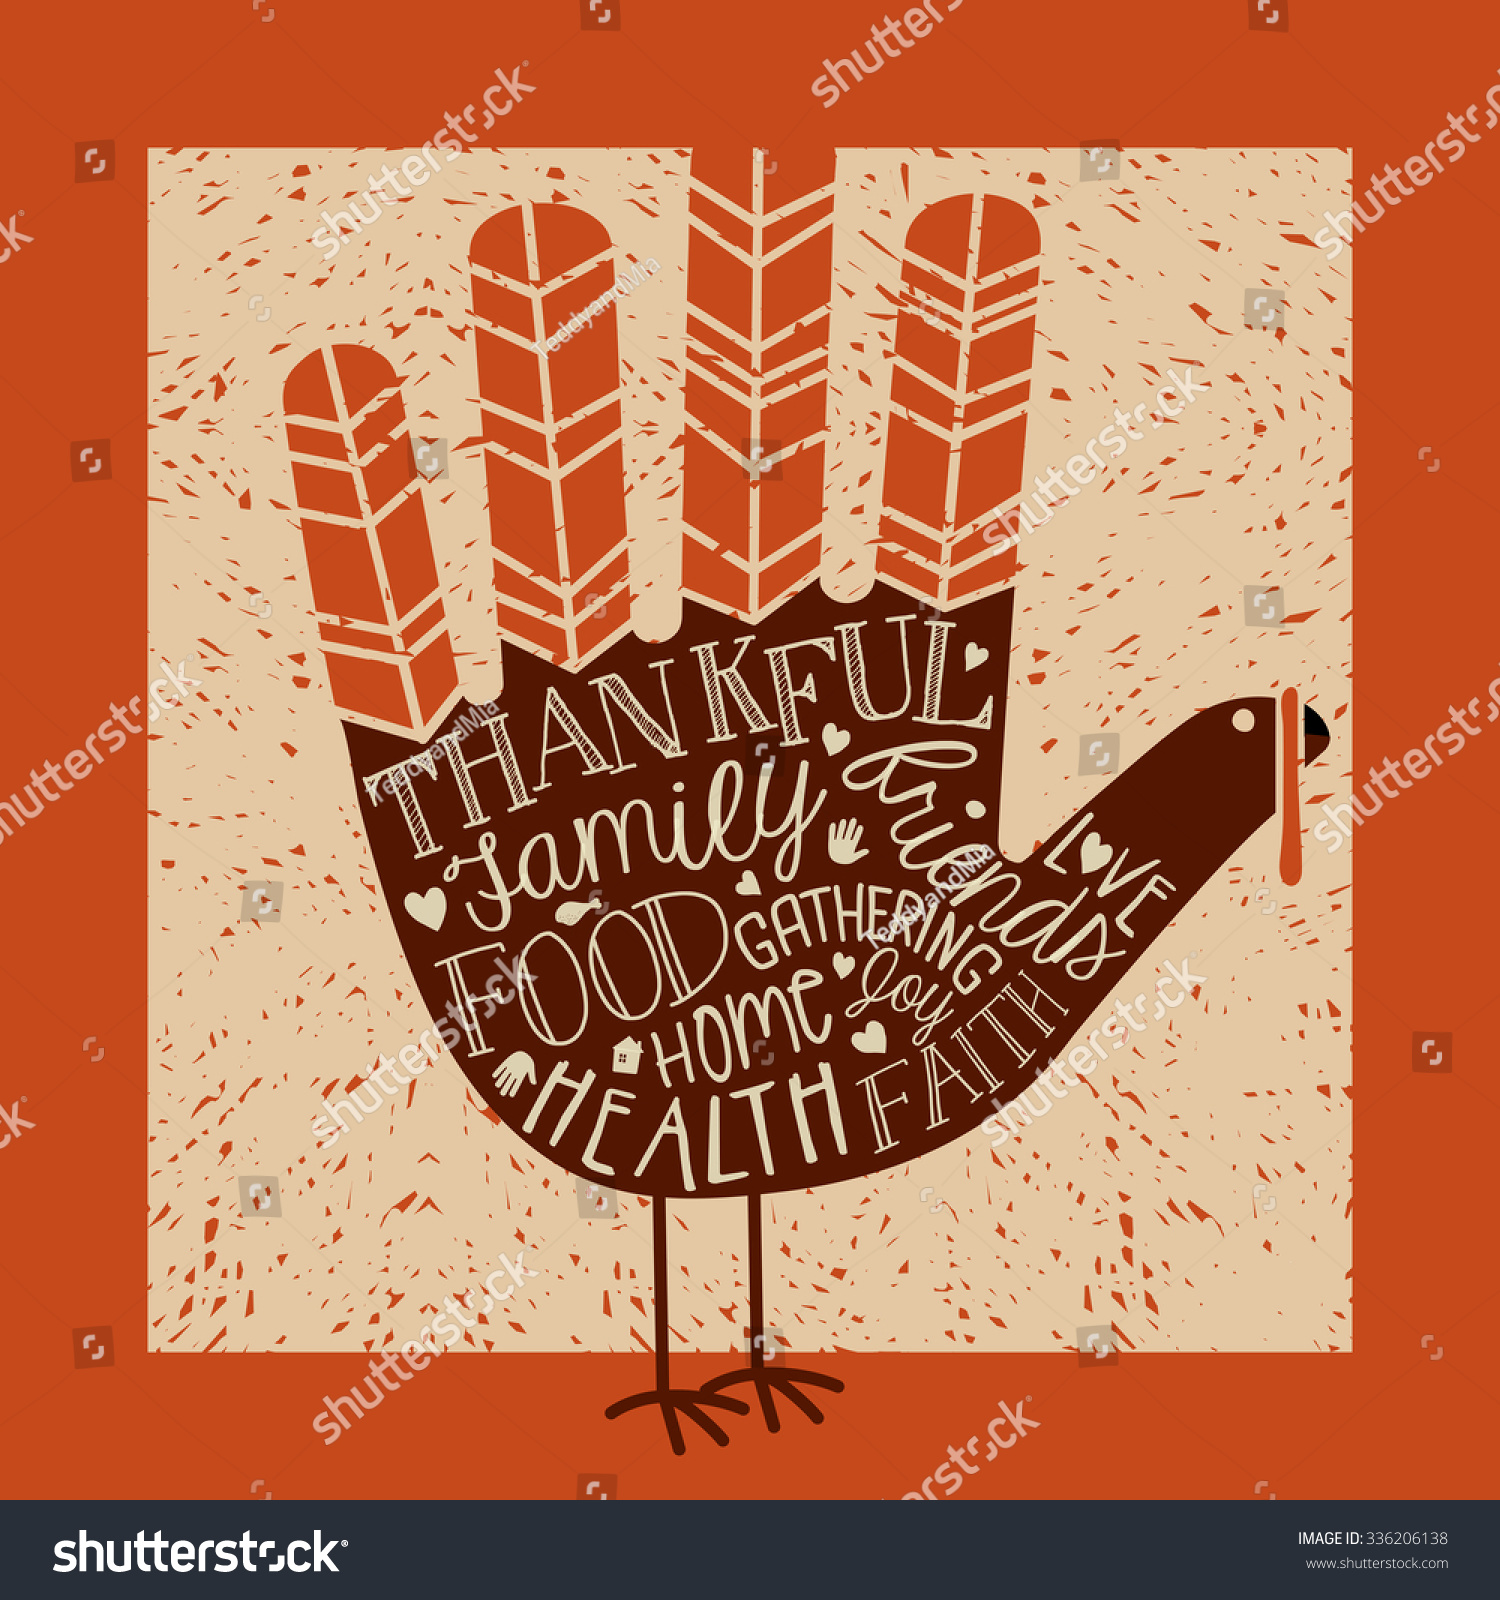 Thanksgiving card design theme message cute stock vector 336206138 thanksgiving card design with theme message and cute hand print turkey kristyandbryce Choice Image